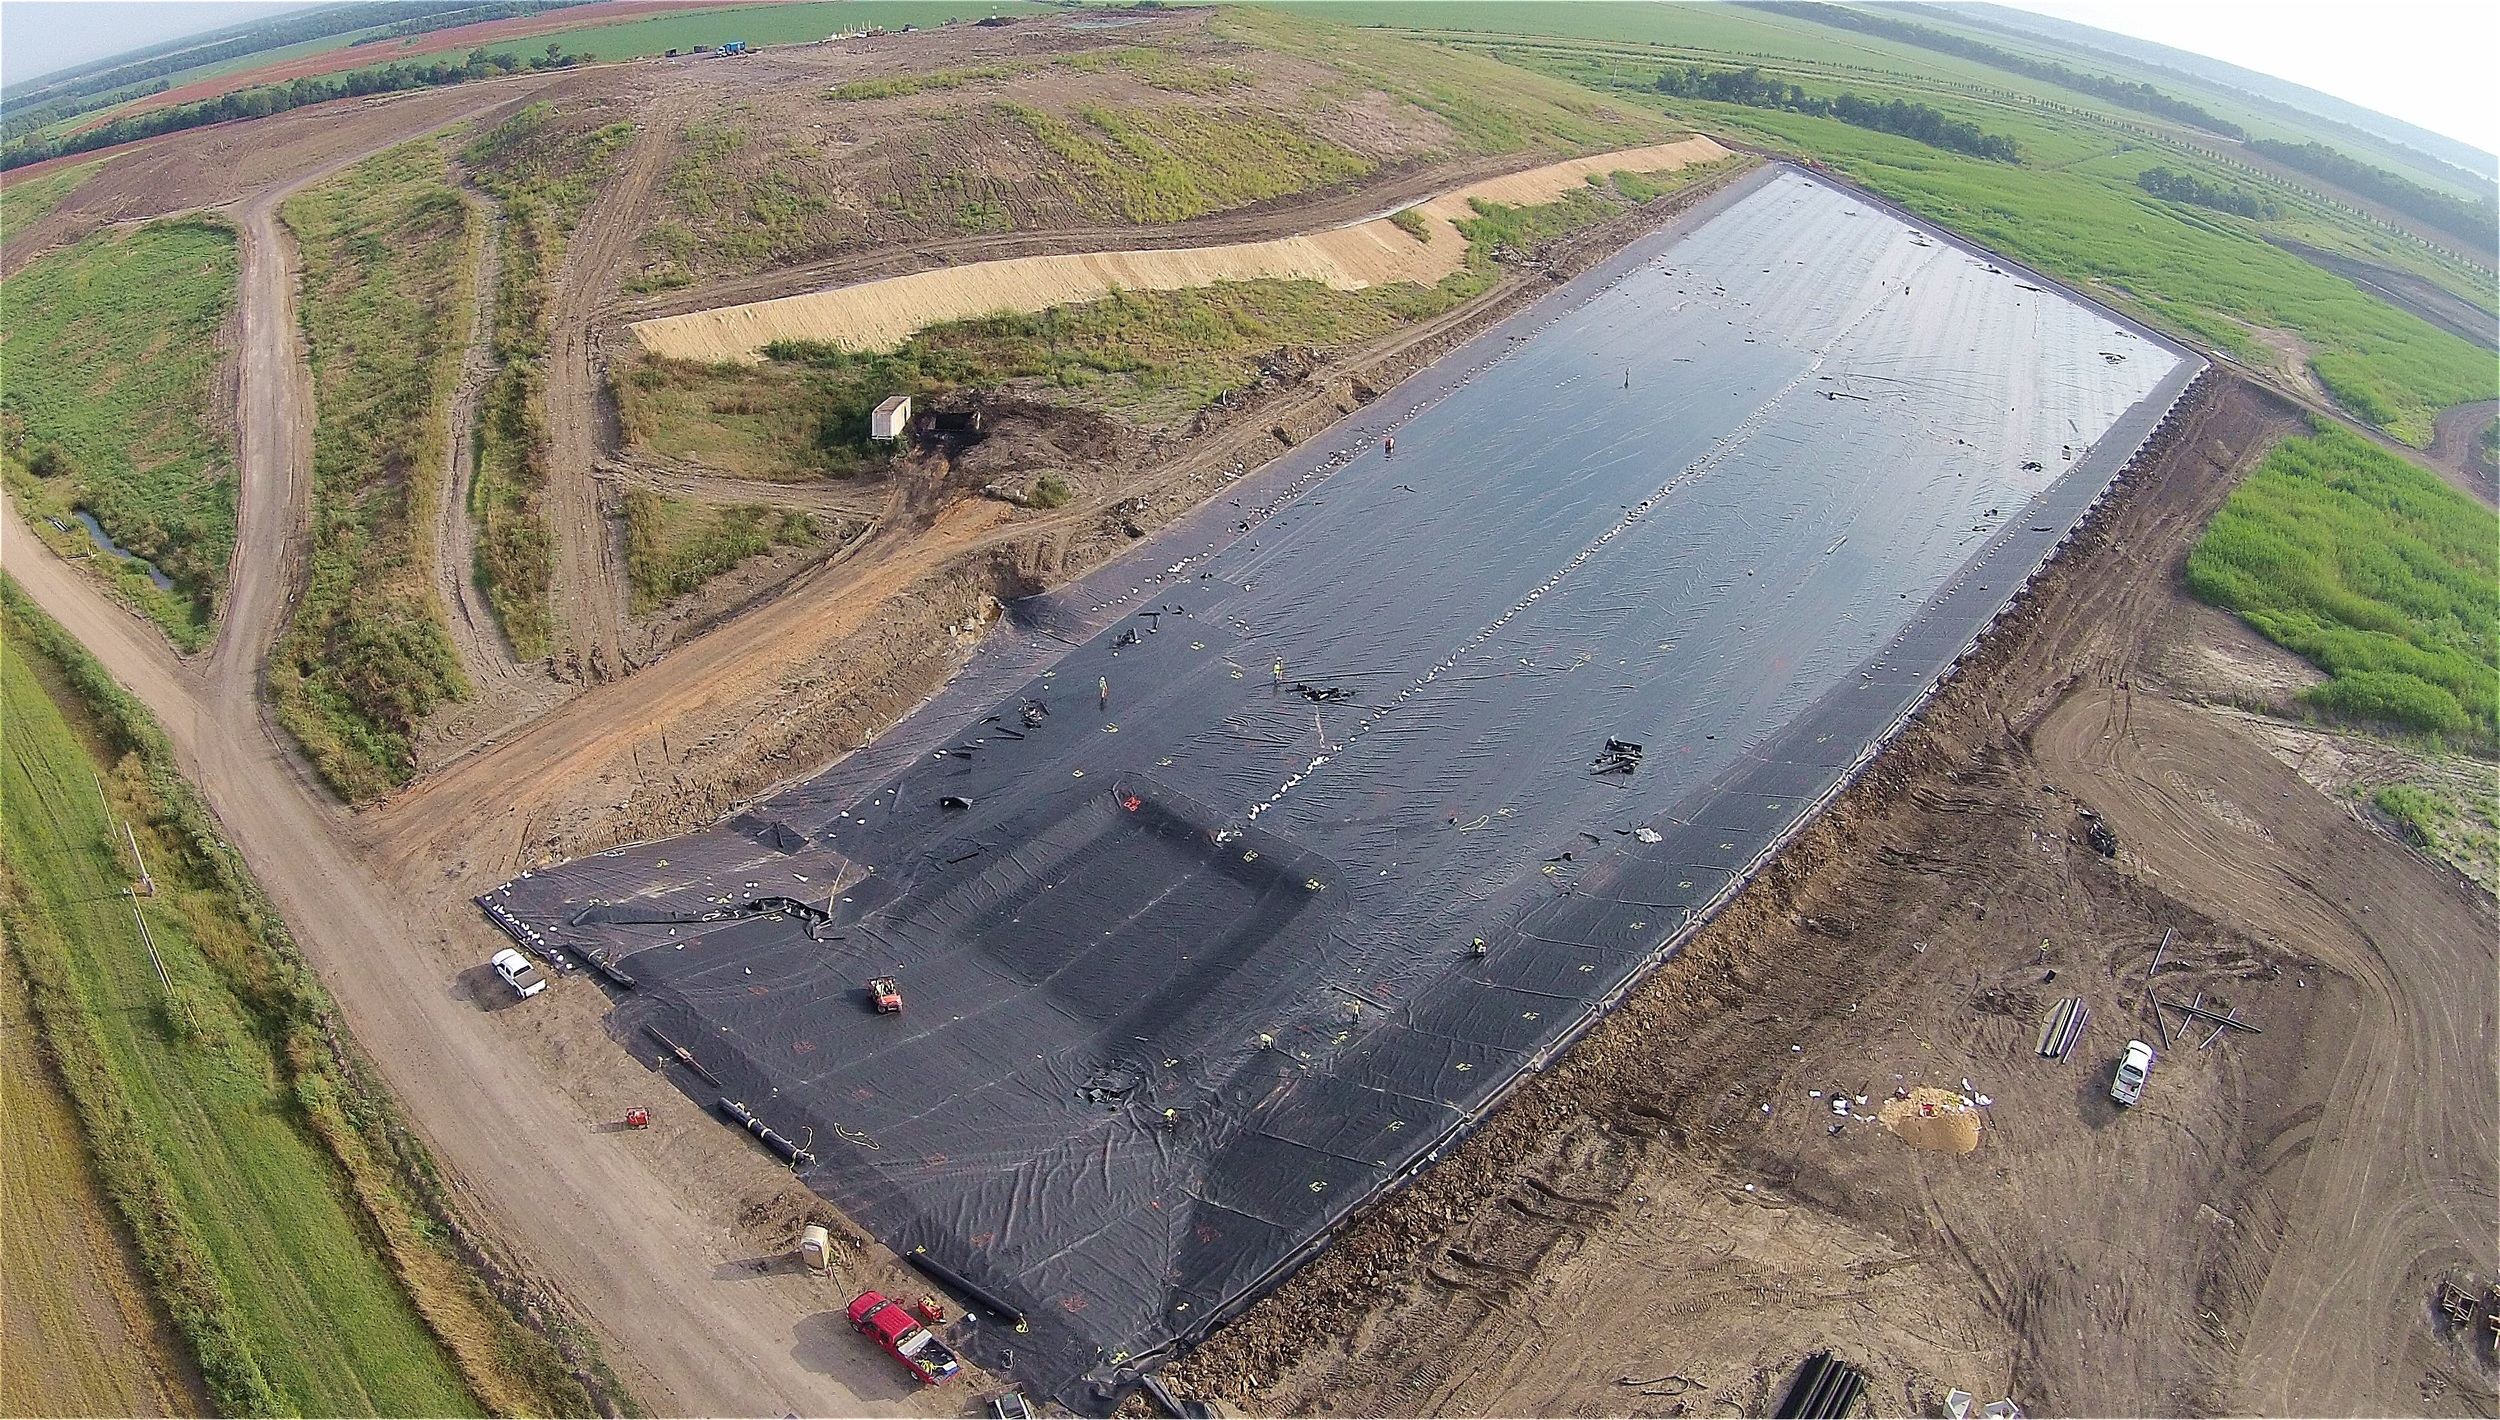 Same site as below (Mississippi Delta), during the HDPE geomembrane liner installation above the compacted clay liner.